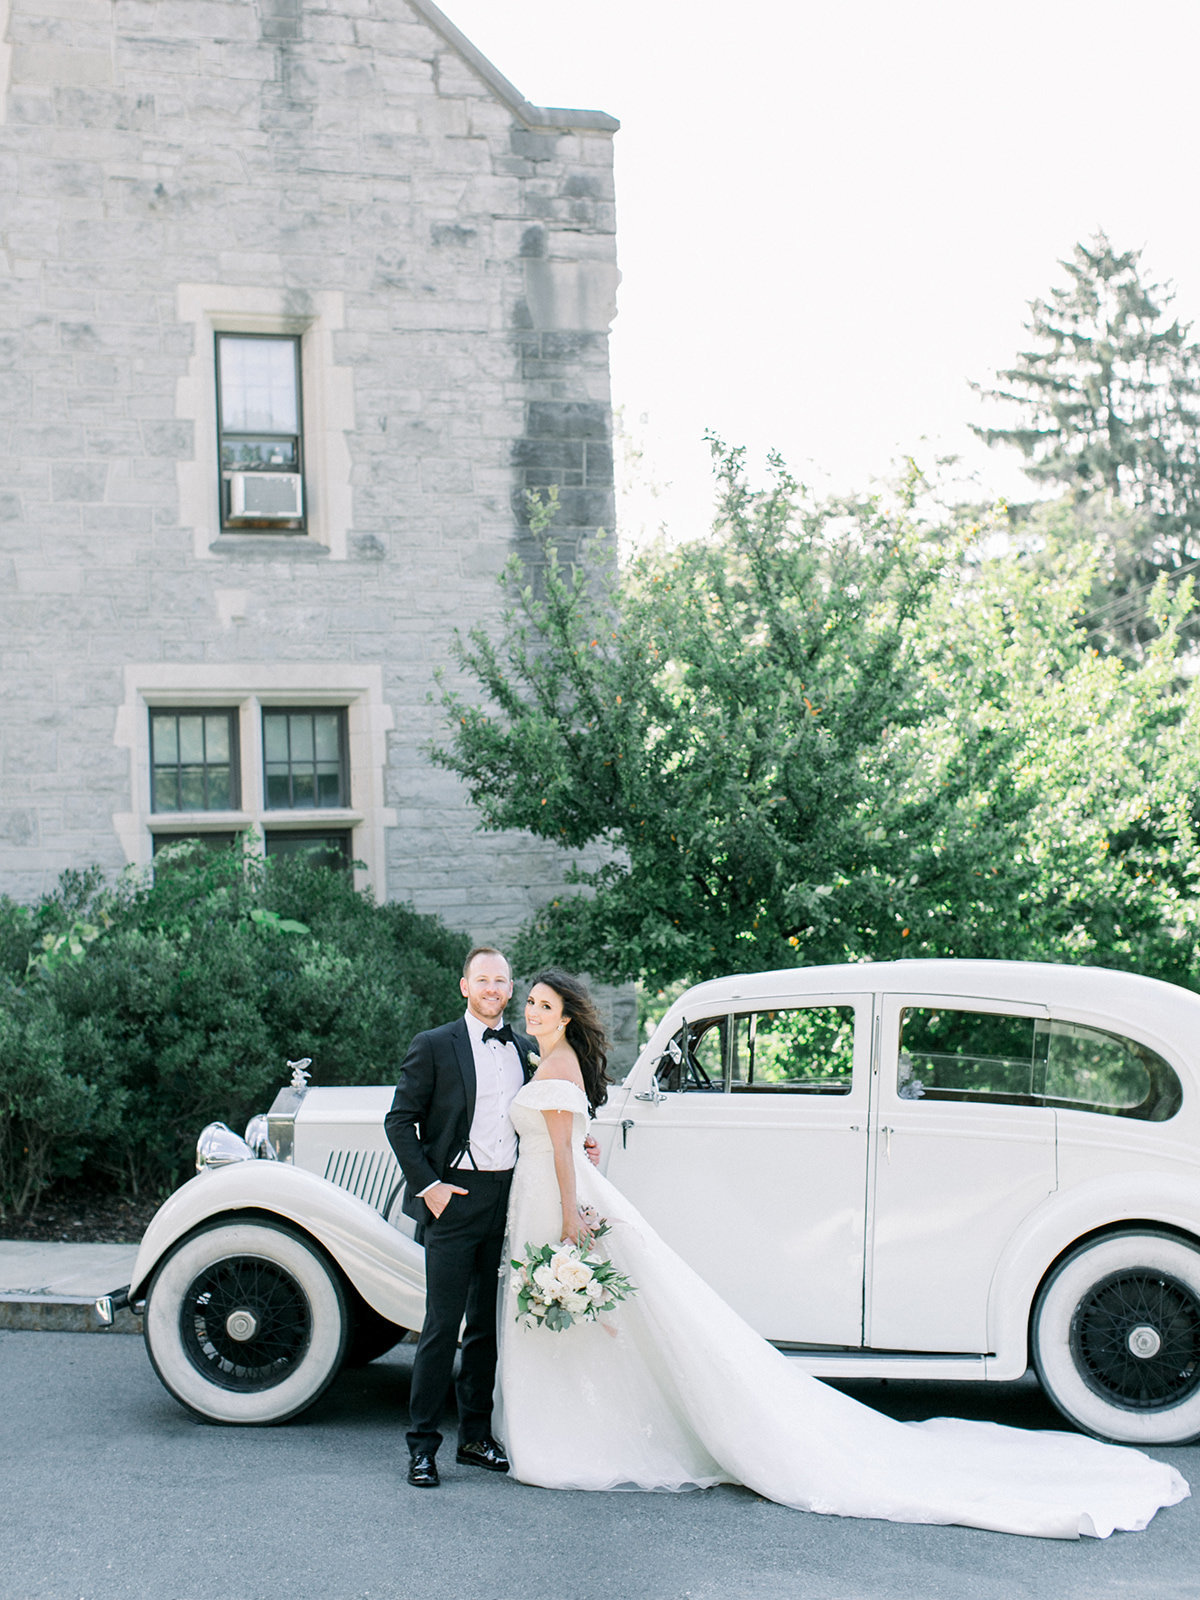 Meredith_Chris_Wedding_8.18.2018-500